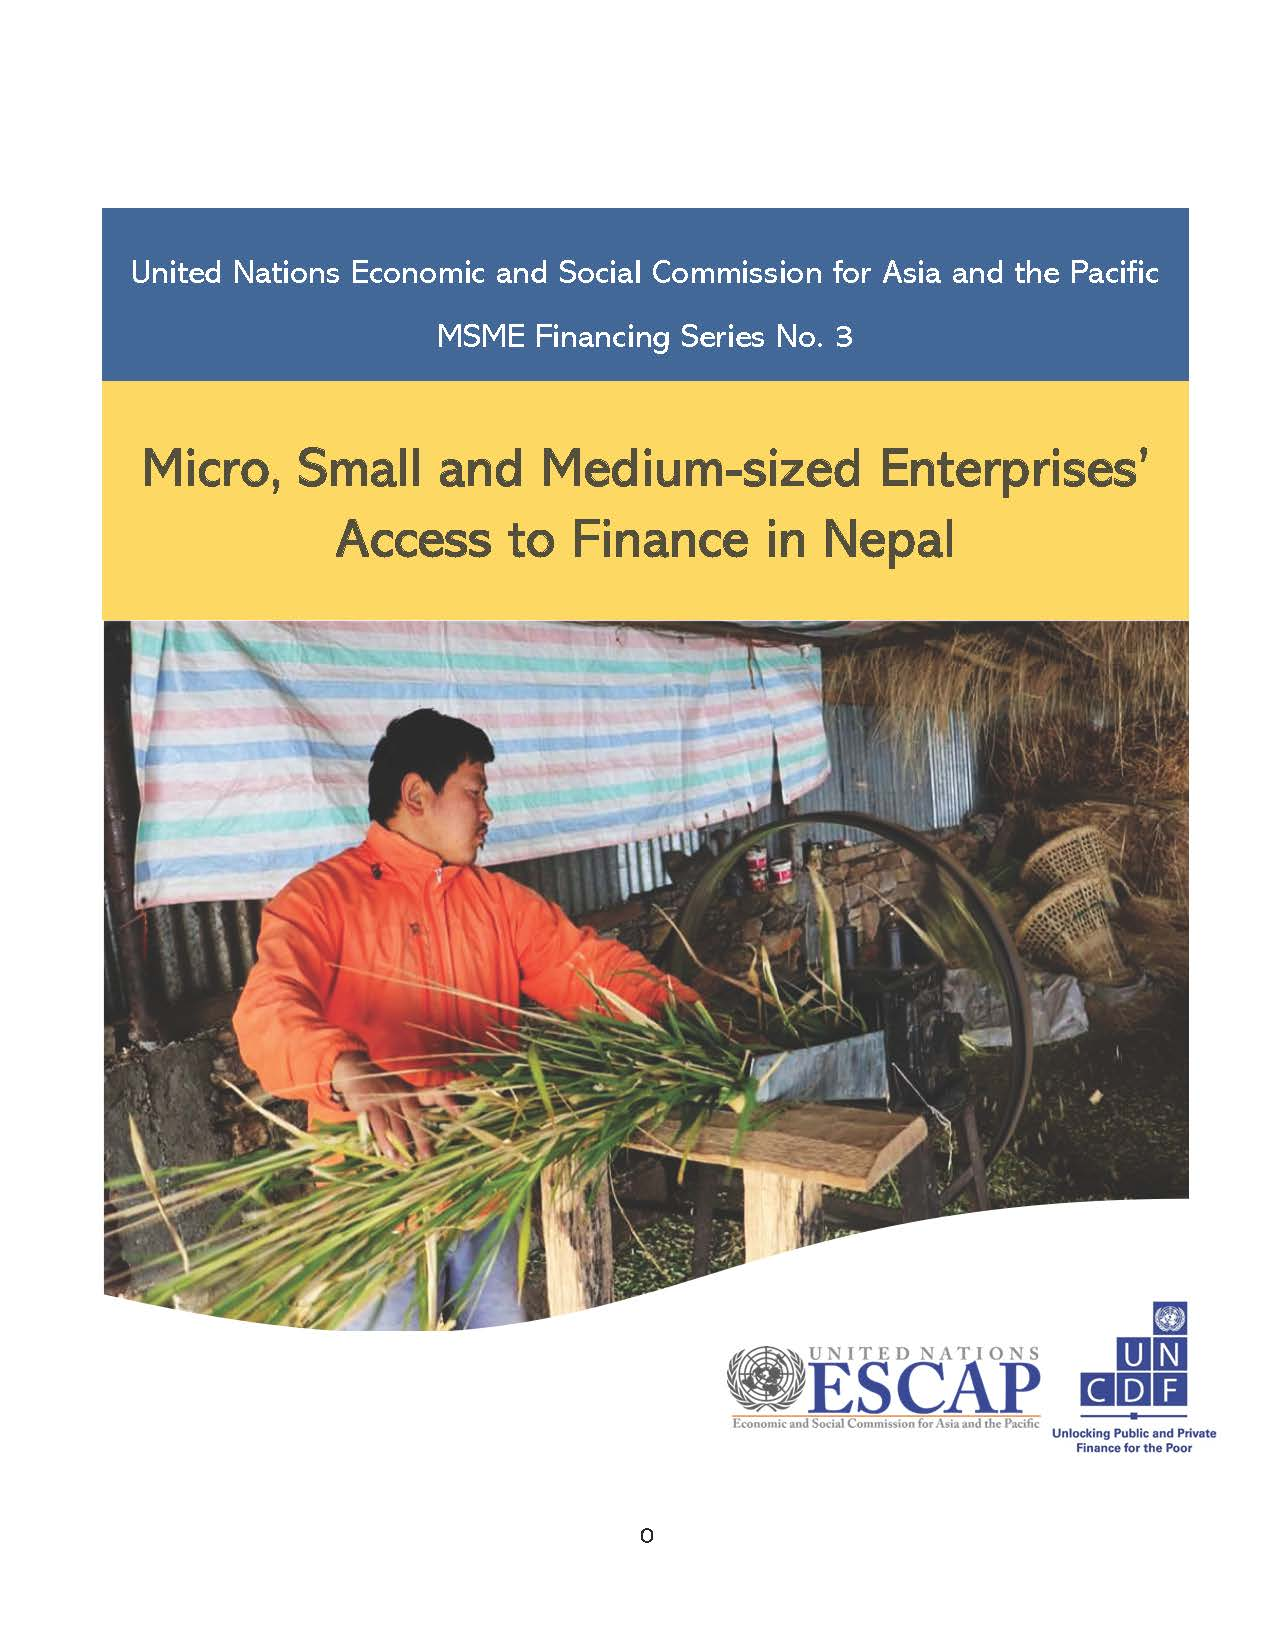 Micro, Small and Medium-sized Enterprises' Access to Finance in Nepal